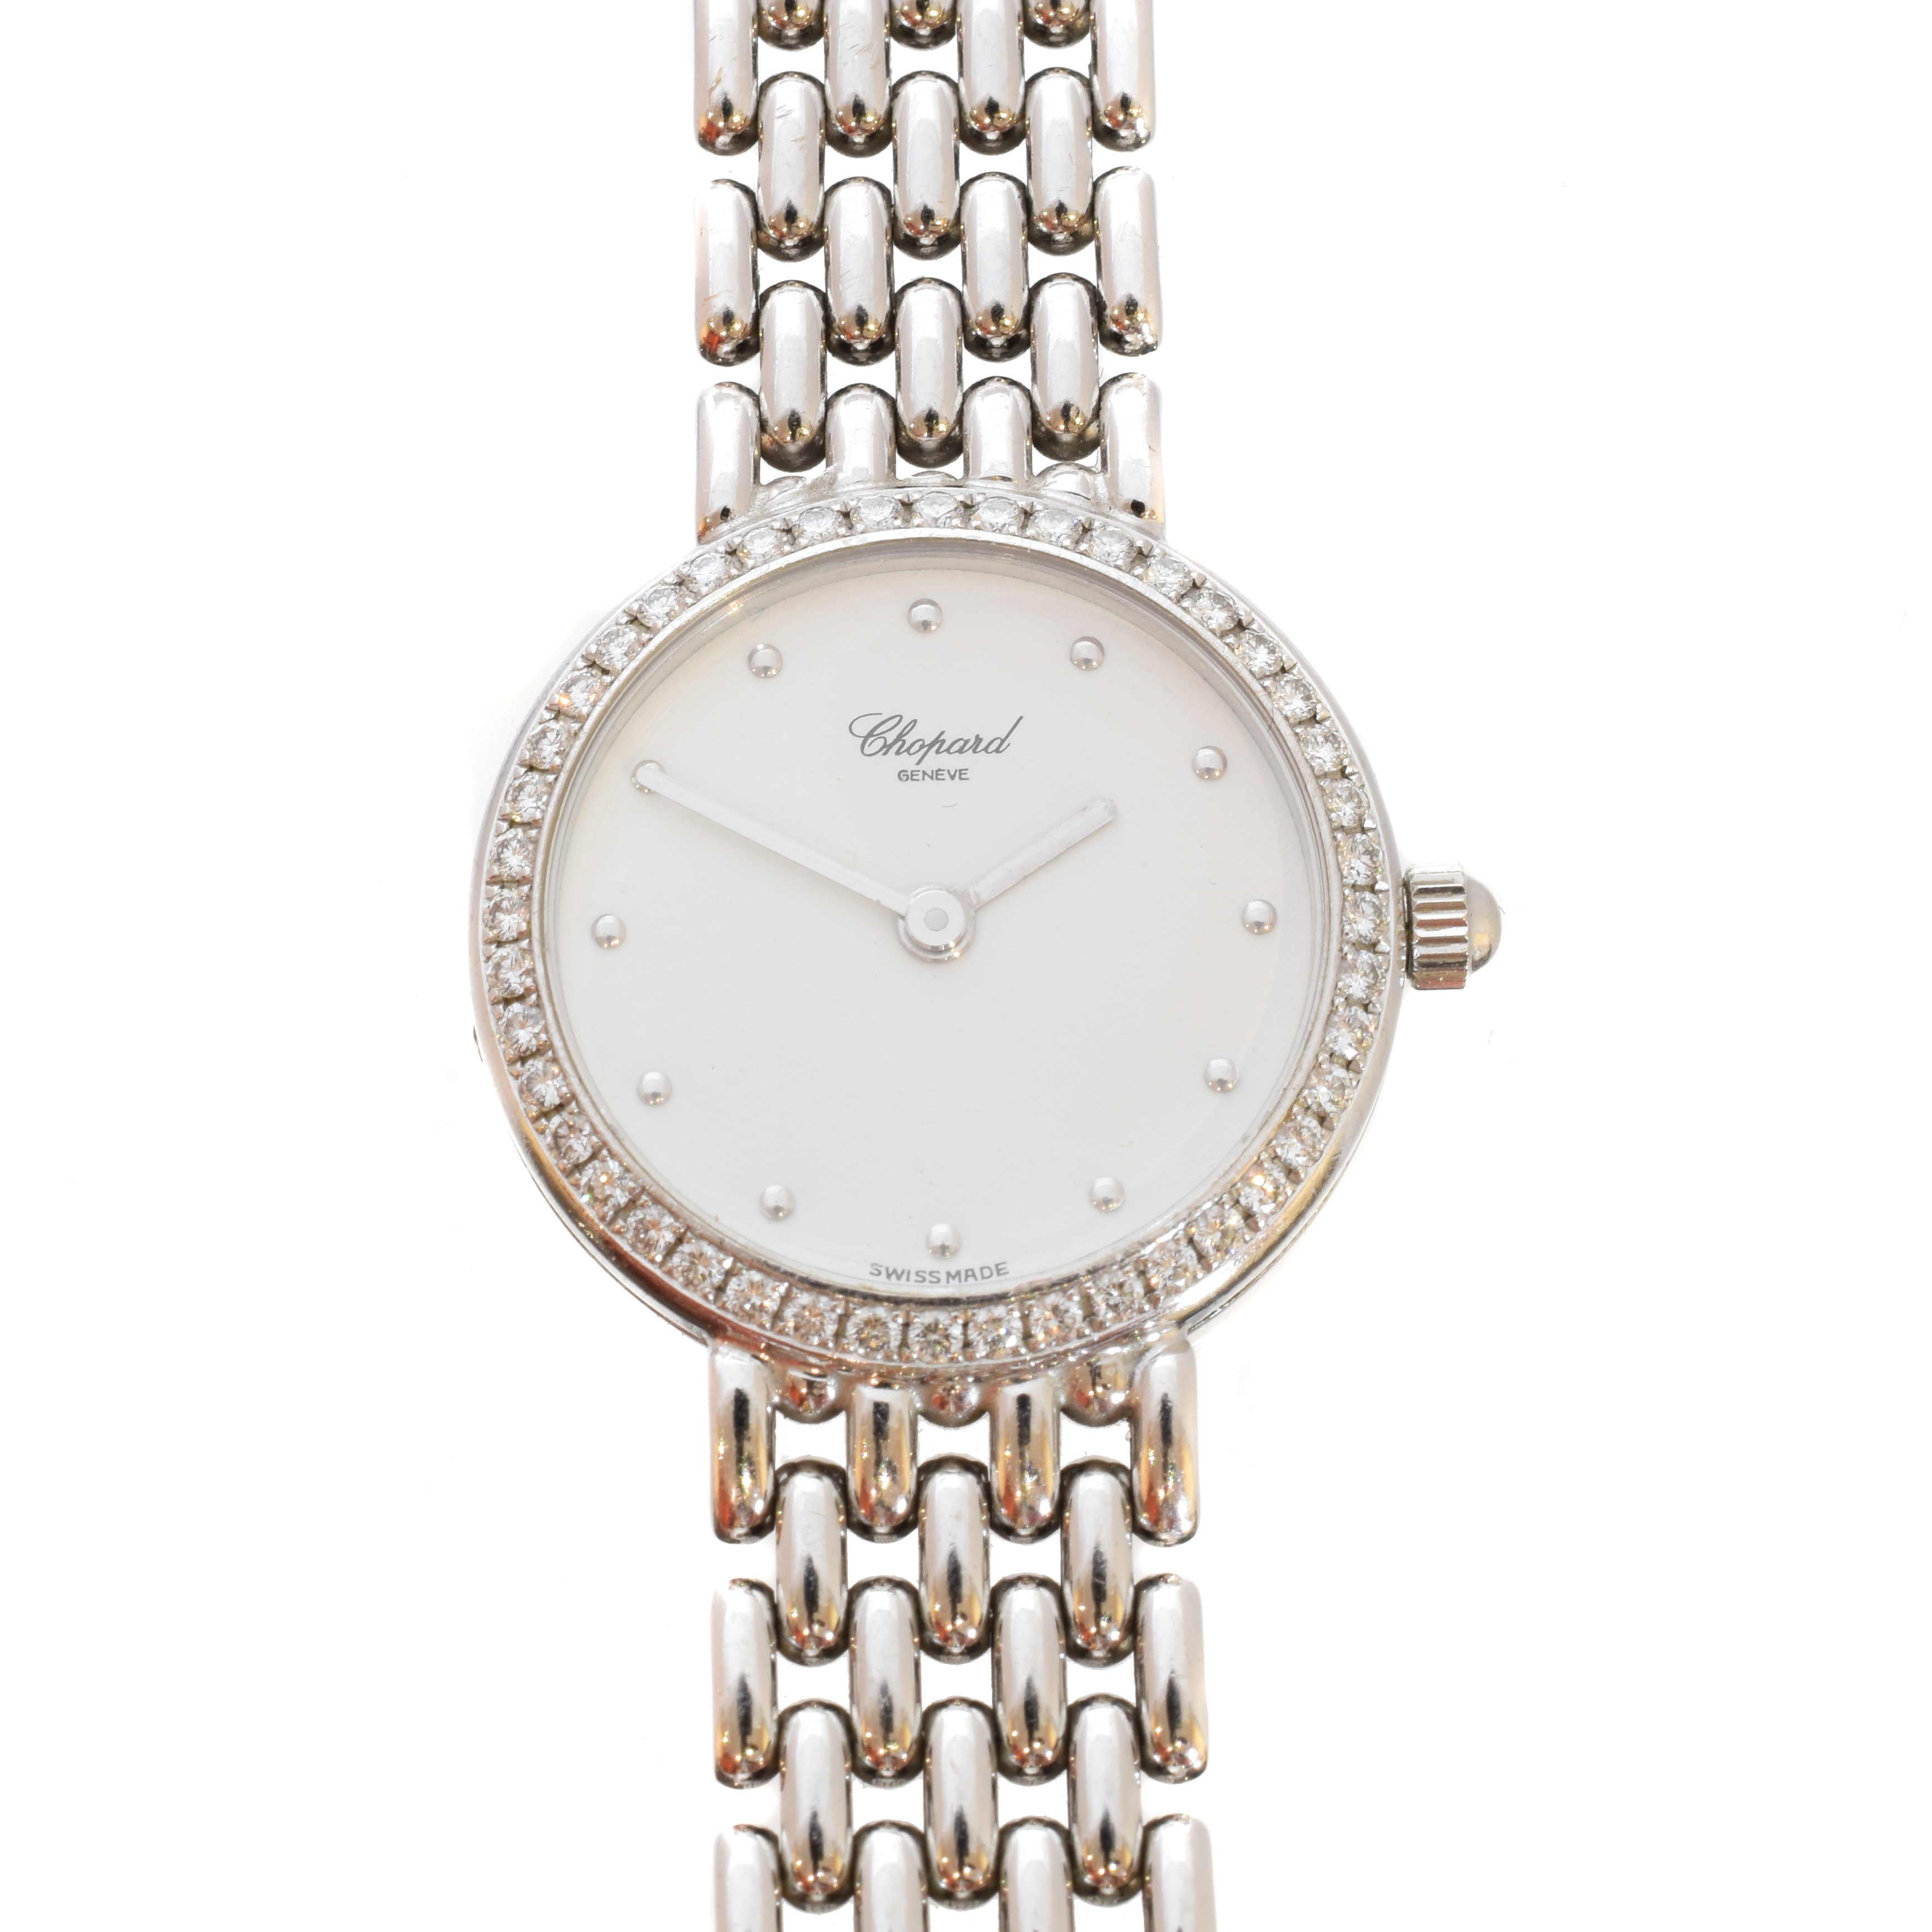 An 18ct gold diamond Chopard watch, the circular signed dial with dot hour markers, diamond set bezel and 18ct gold case numbered 478164, bearing Swiss assay marks, with fancy link bracelet and folding clasp, signed and numbered Chopard 10/5911, case diameter 21mm, gross weight 41.6g.